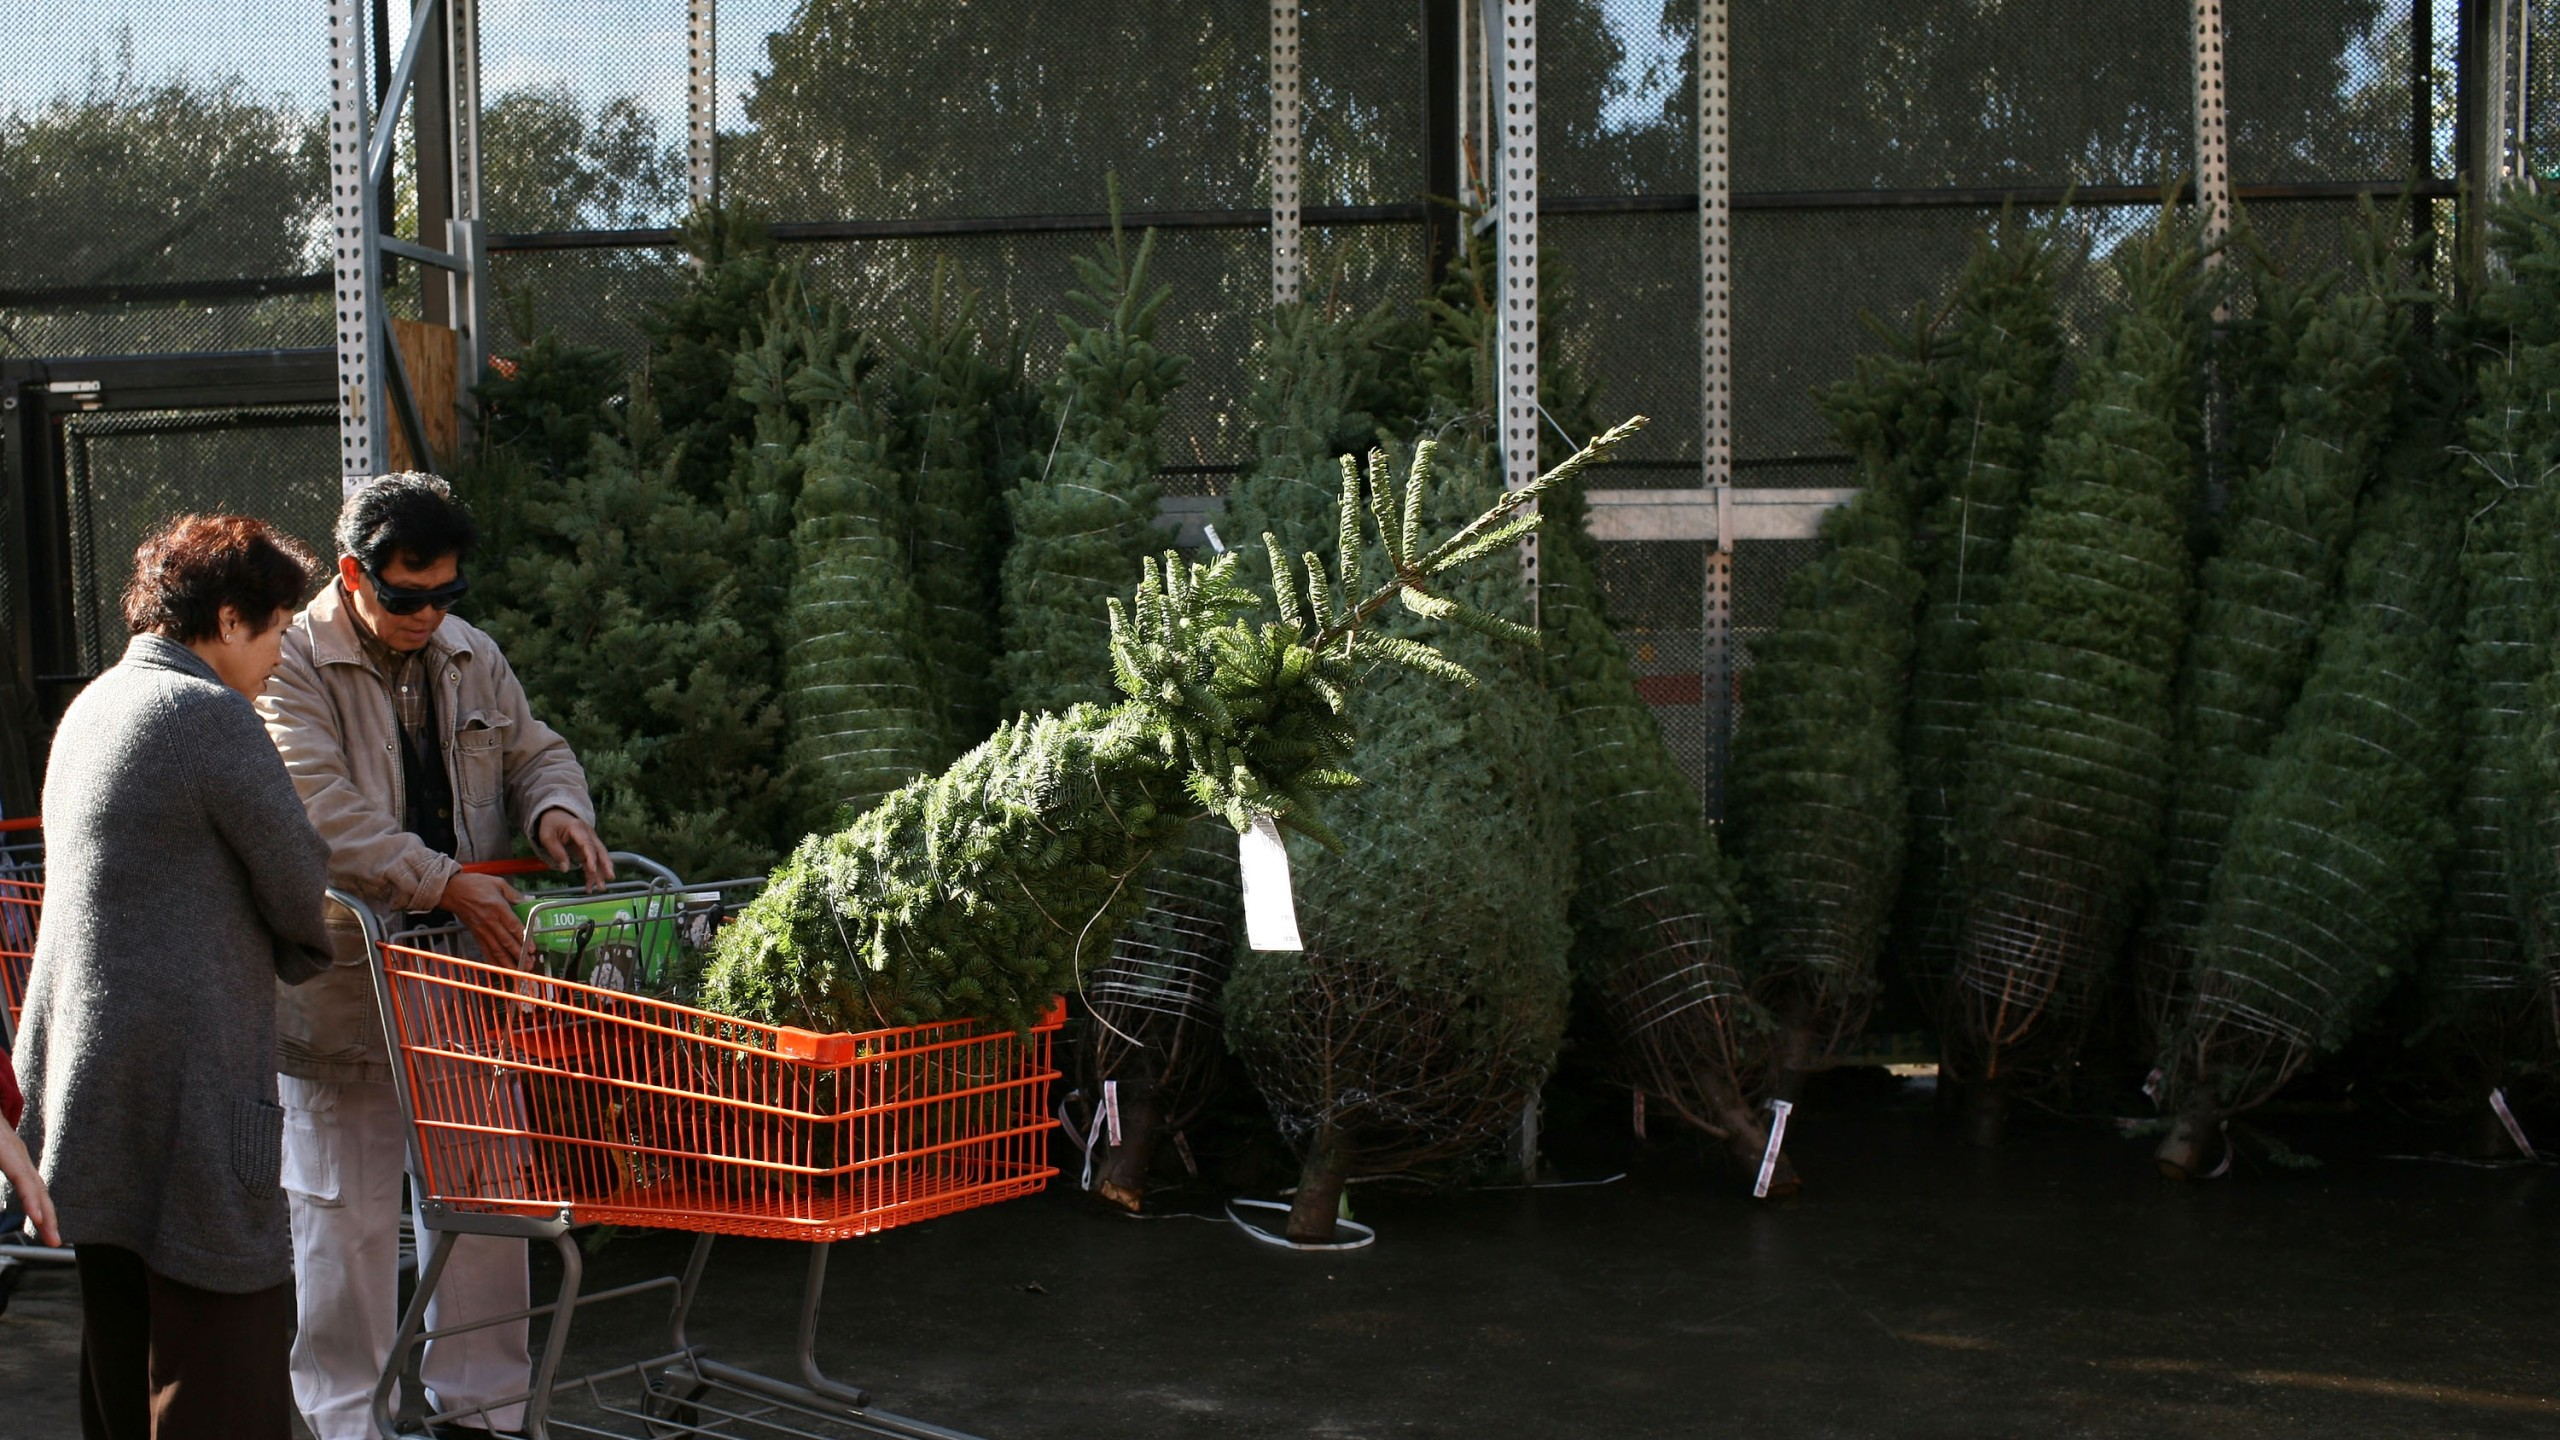 Customers prepare to purchase a Christmas tree at a Home Depot store on Dec. 2, 2008 in Colma, California. (Credit: Justin Sullivan/Getty Images)